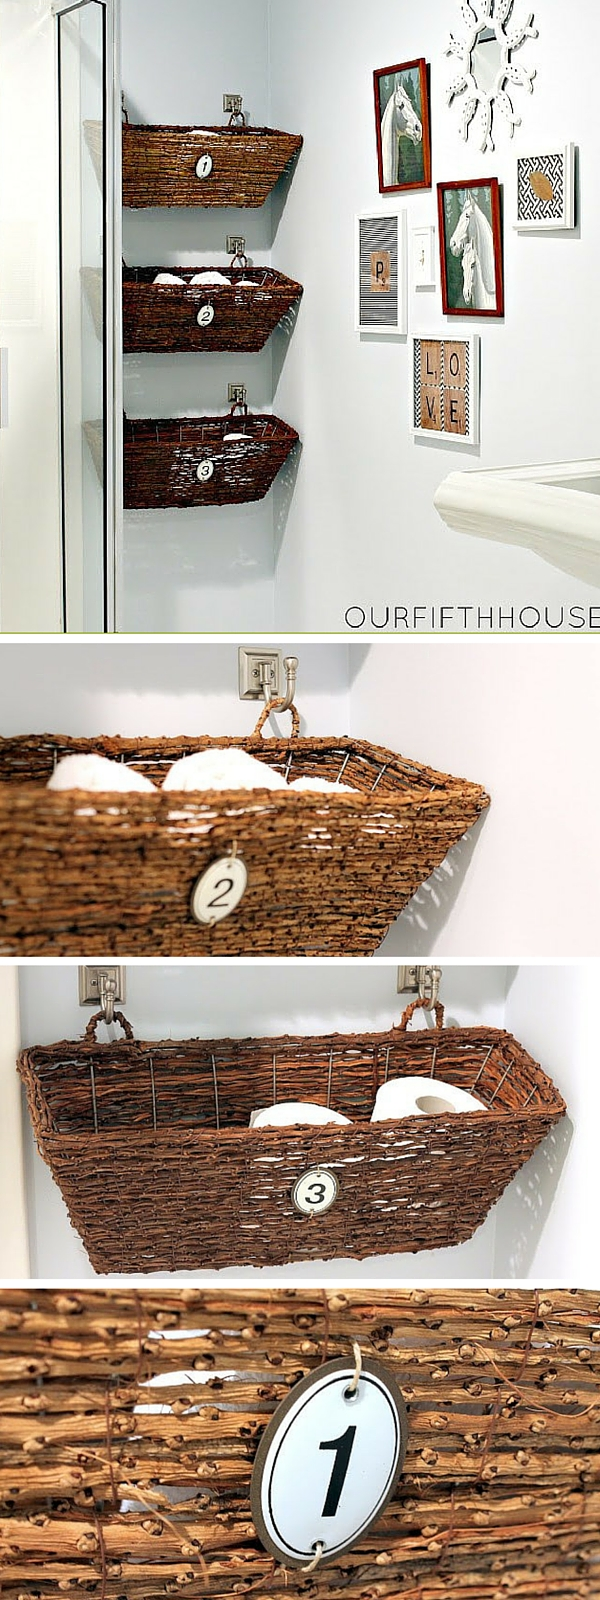 #DIY Window Box Bathroom Storage #bathroomdecor